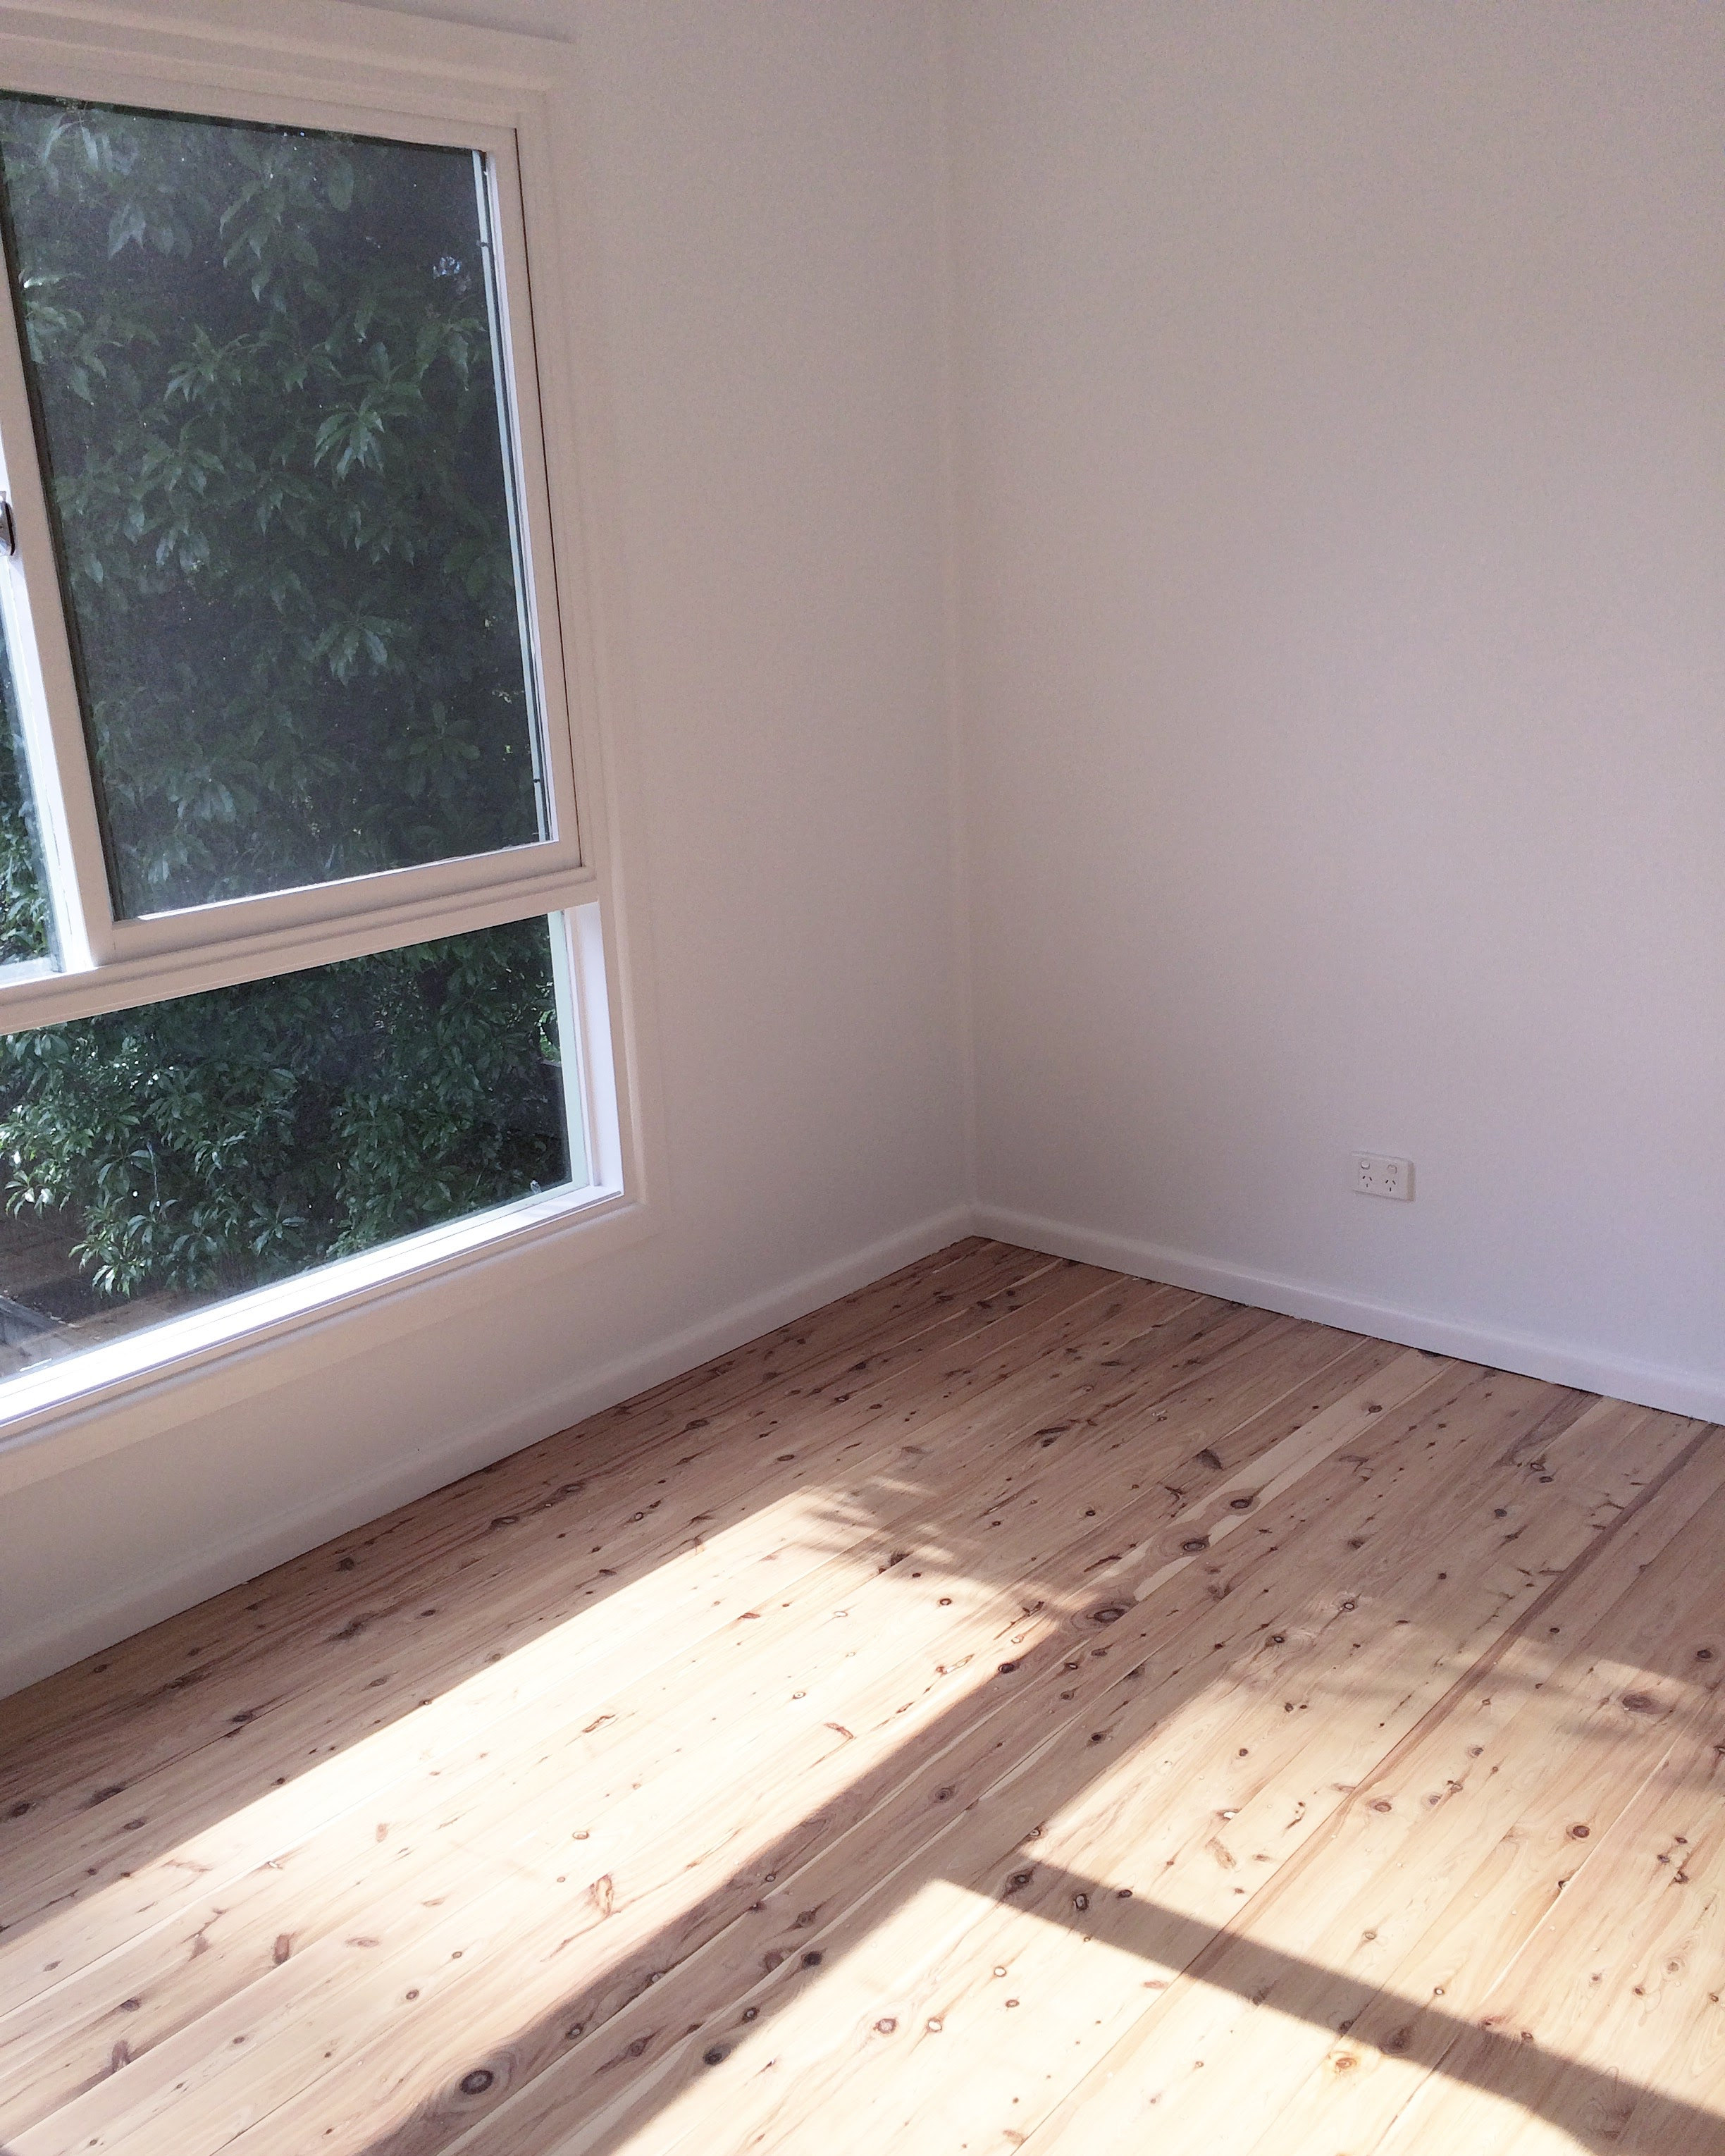 FRESH PAINT AND SANDED FLOORS WITH A WATER-BASED POLYURETHANE MATT FINISH